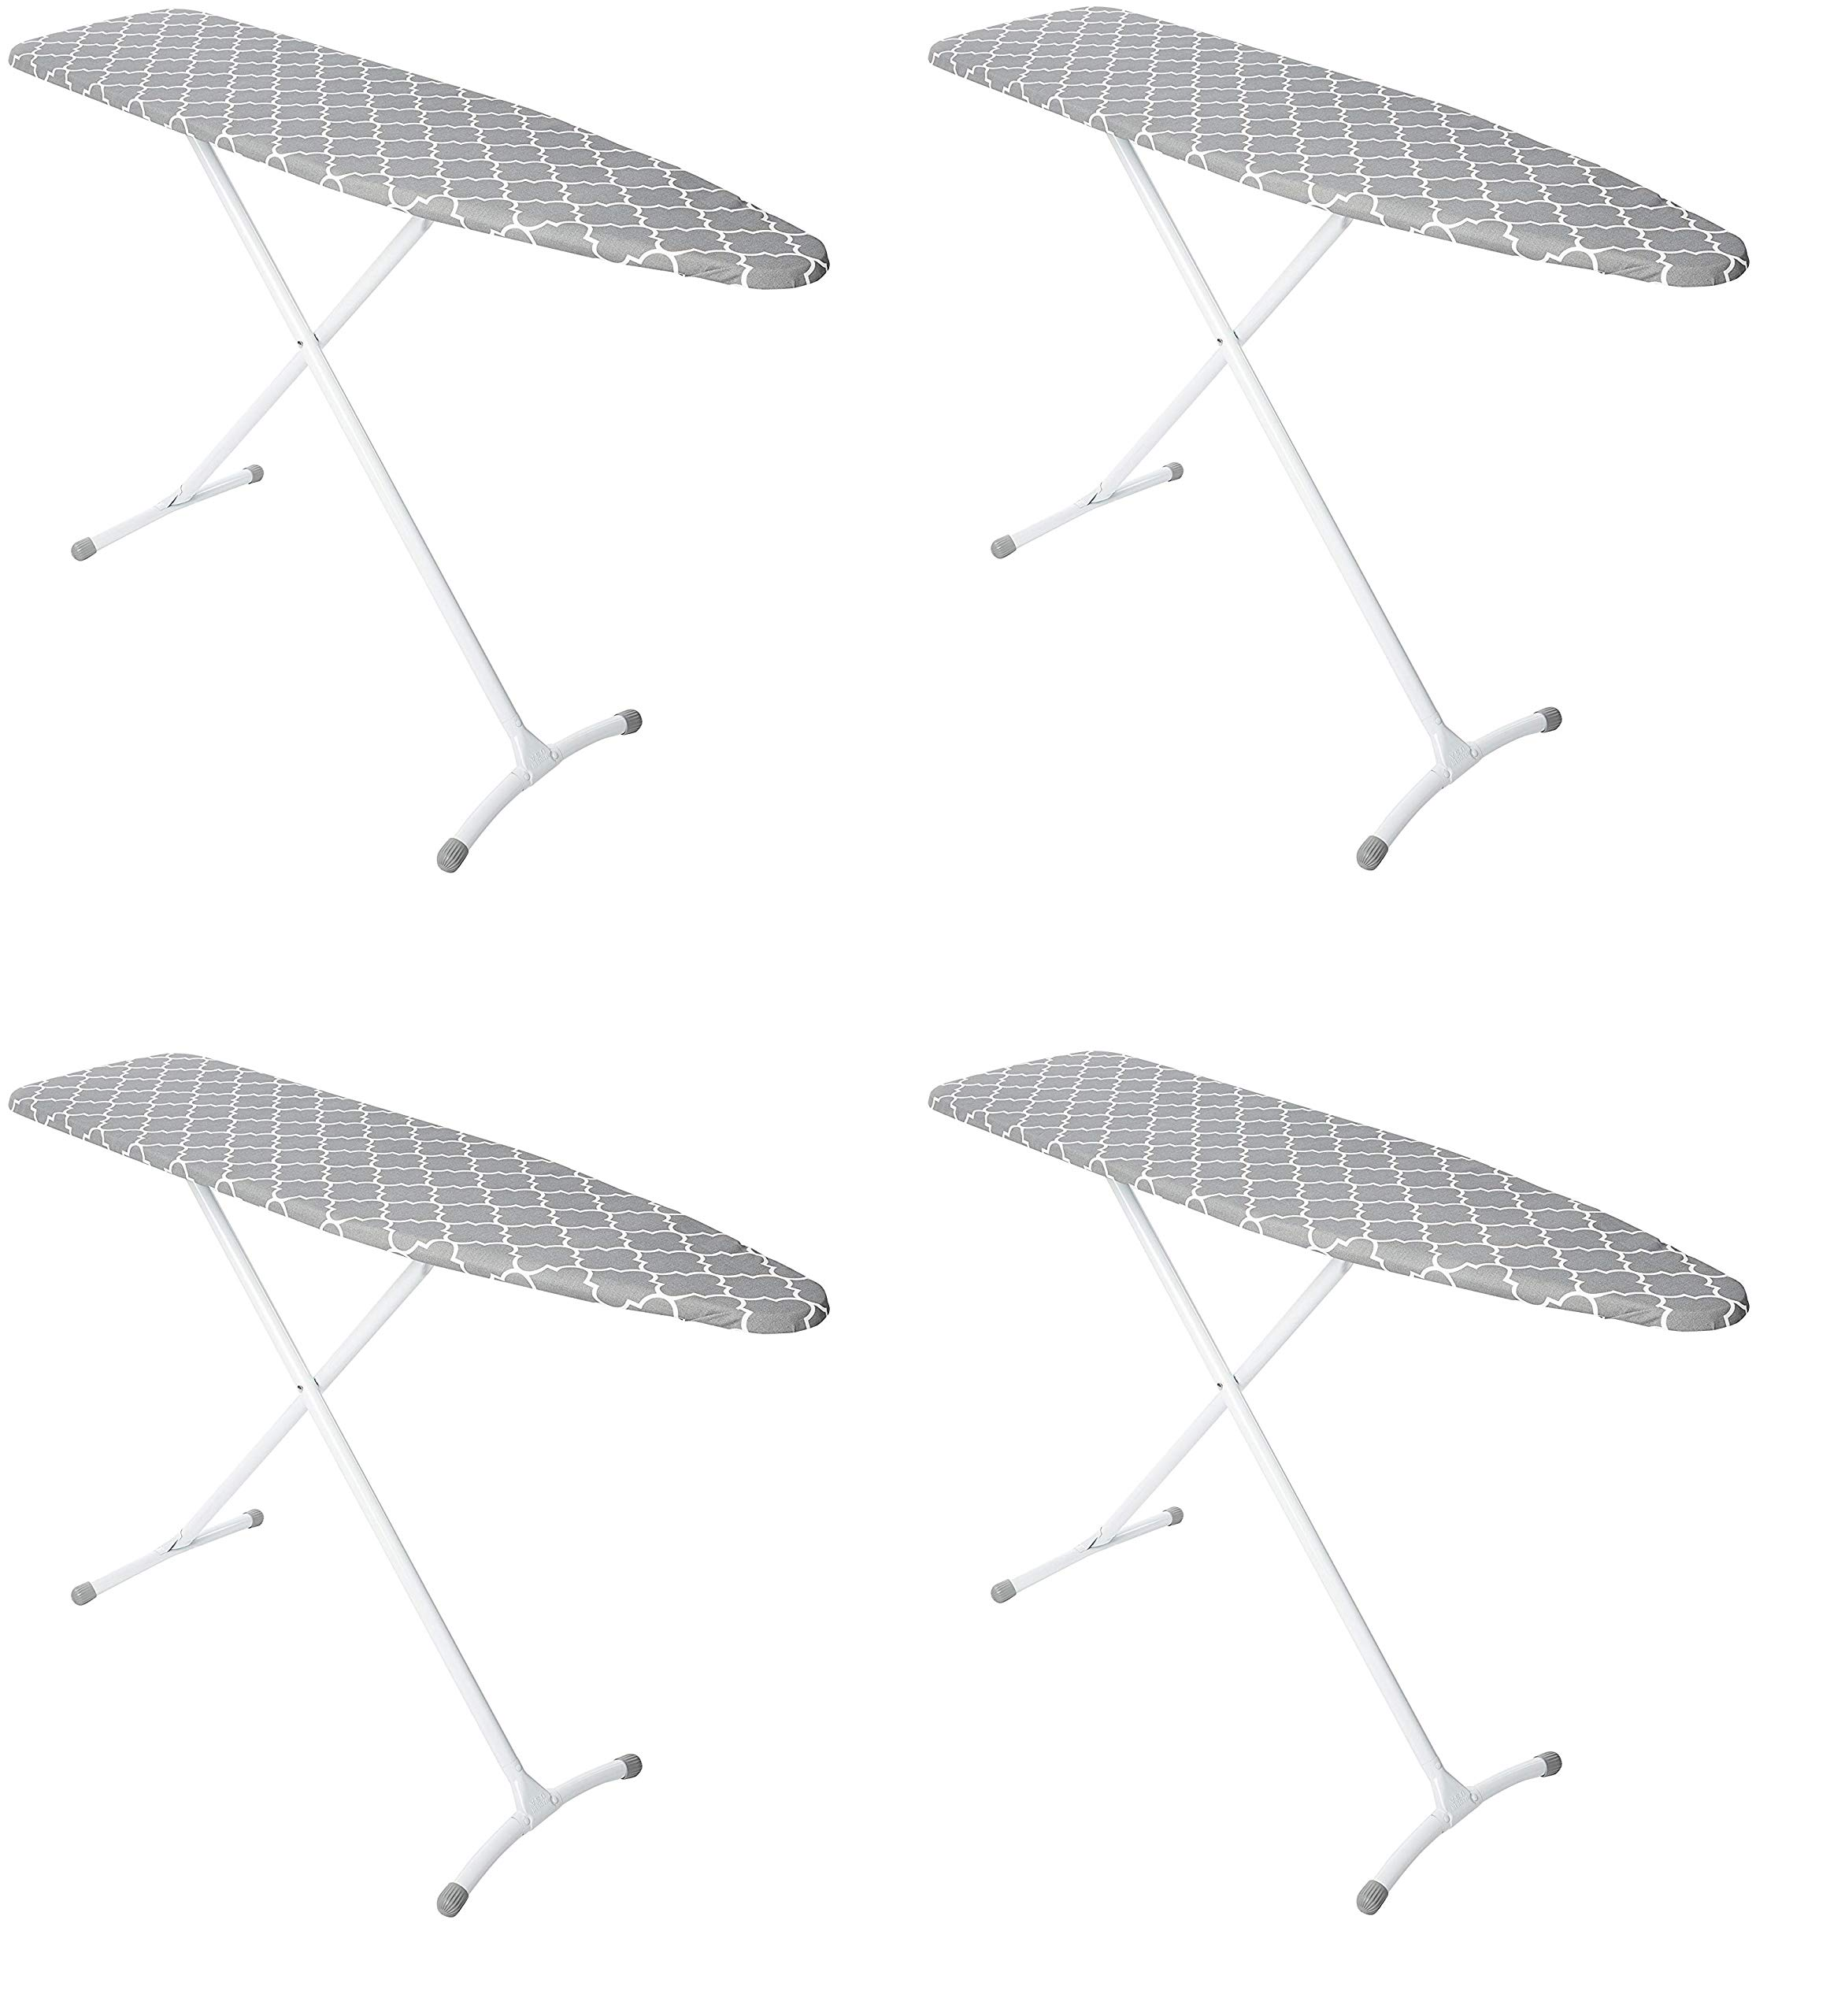 Homz Contour Steel Top Ironing Board, Grey & White Filigree Cover (Pack of 4)